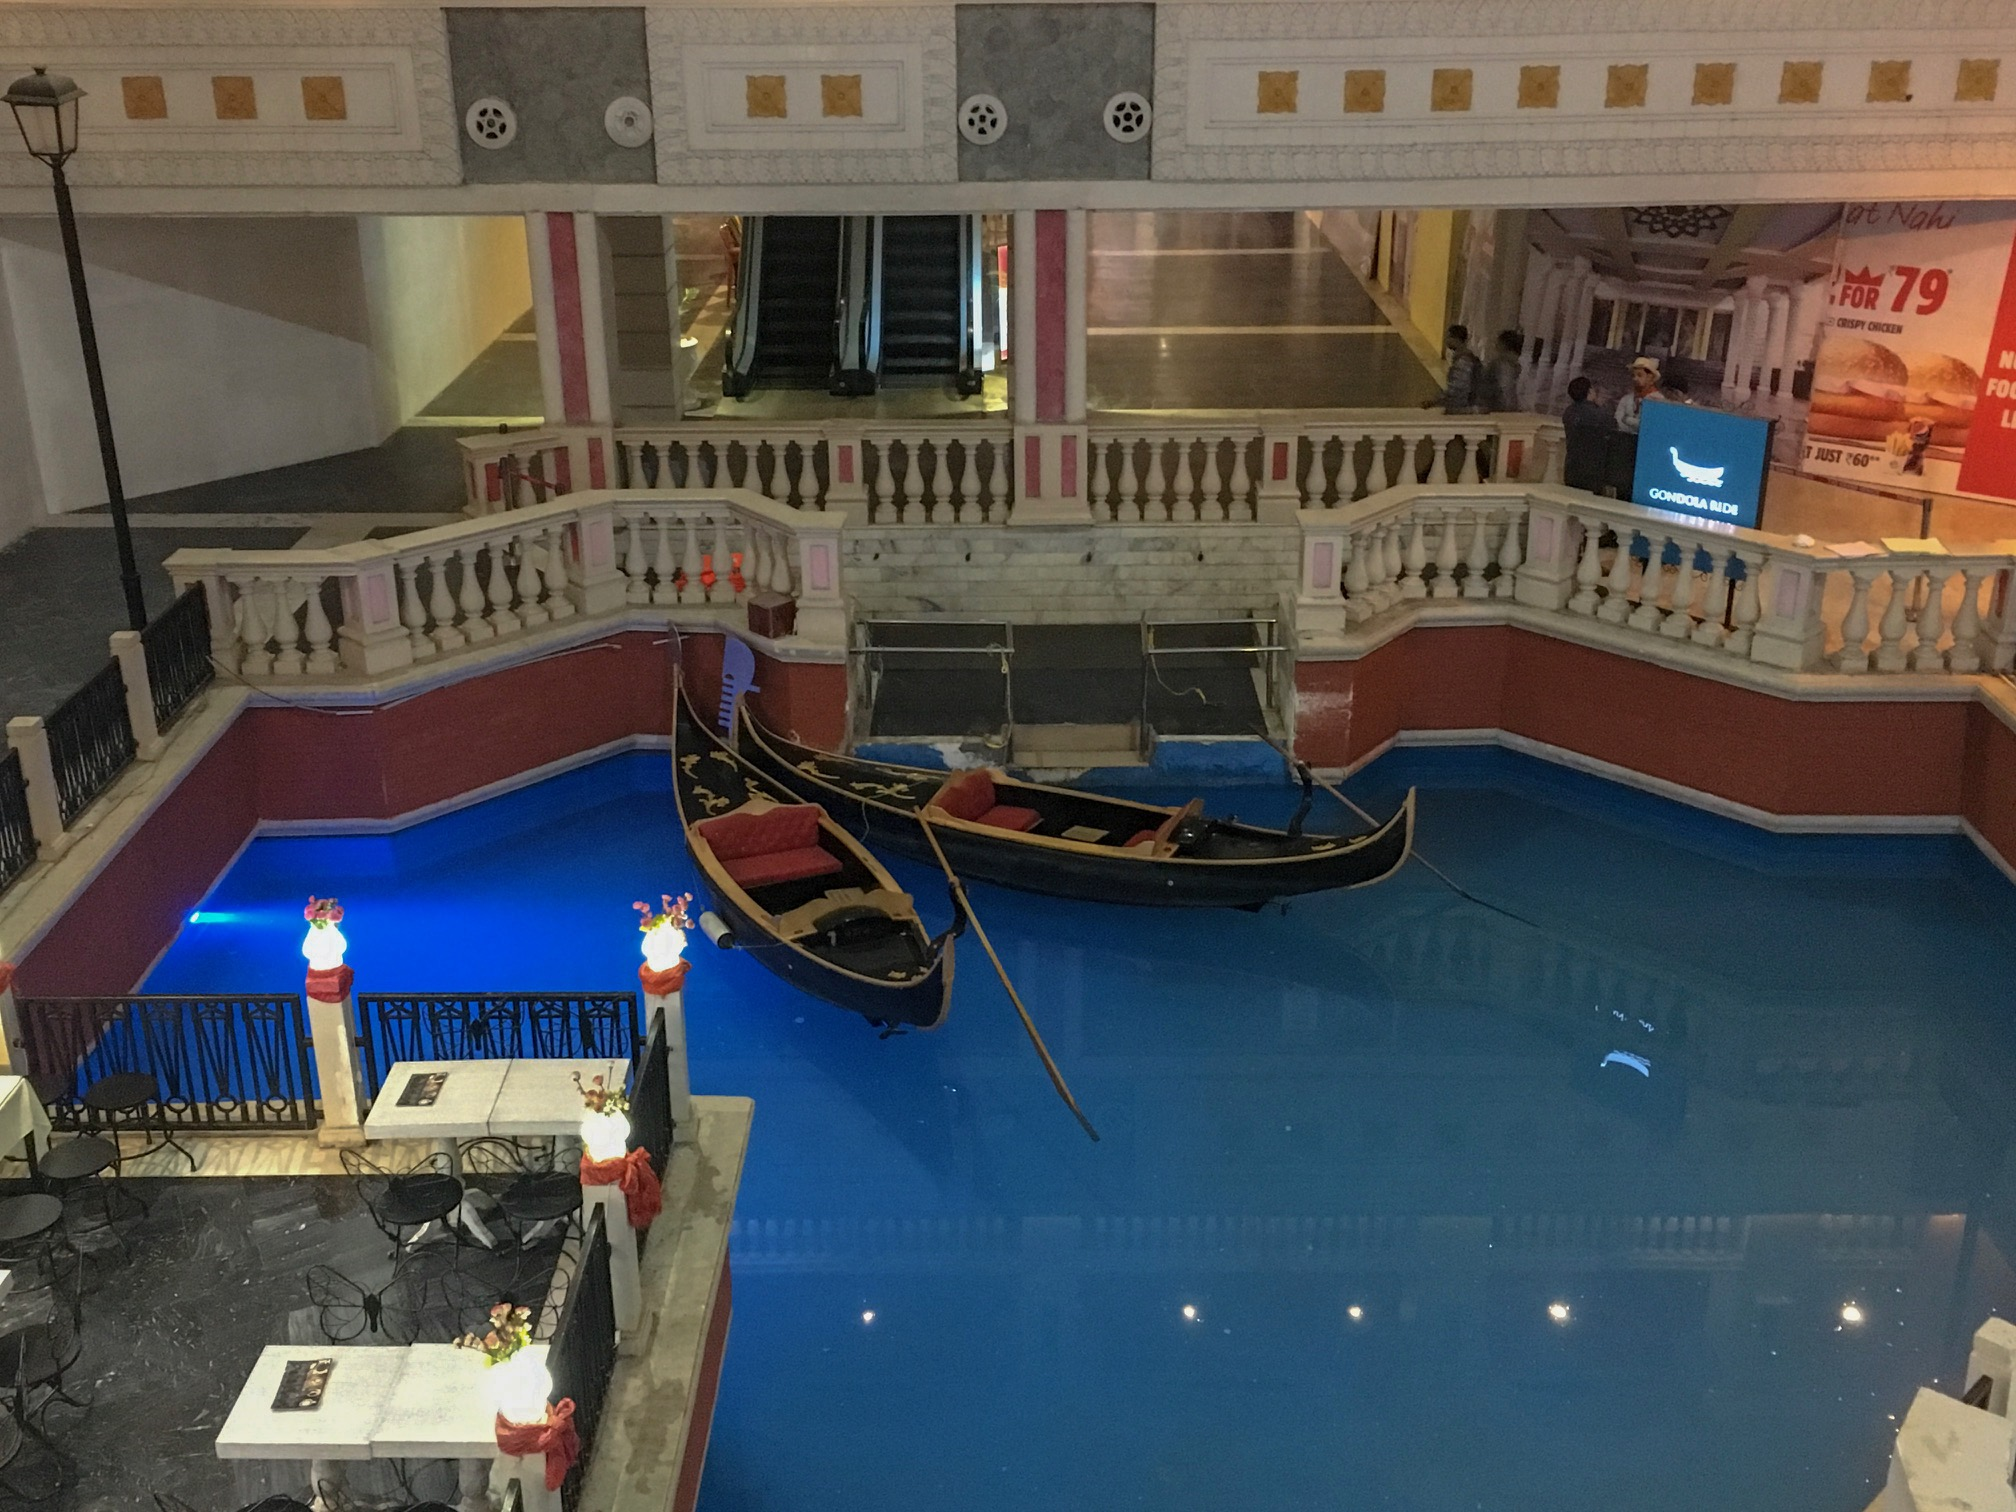 Float around in a gondolas in the Grand Venice Mall in Delhi! Have a fire paan in Delhi! Or try one of these other unusual things to do in Delhi..